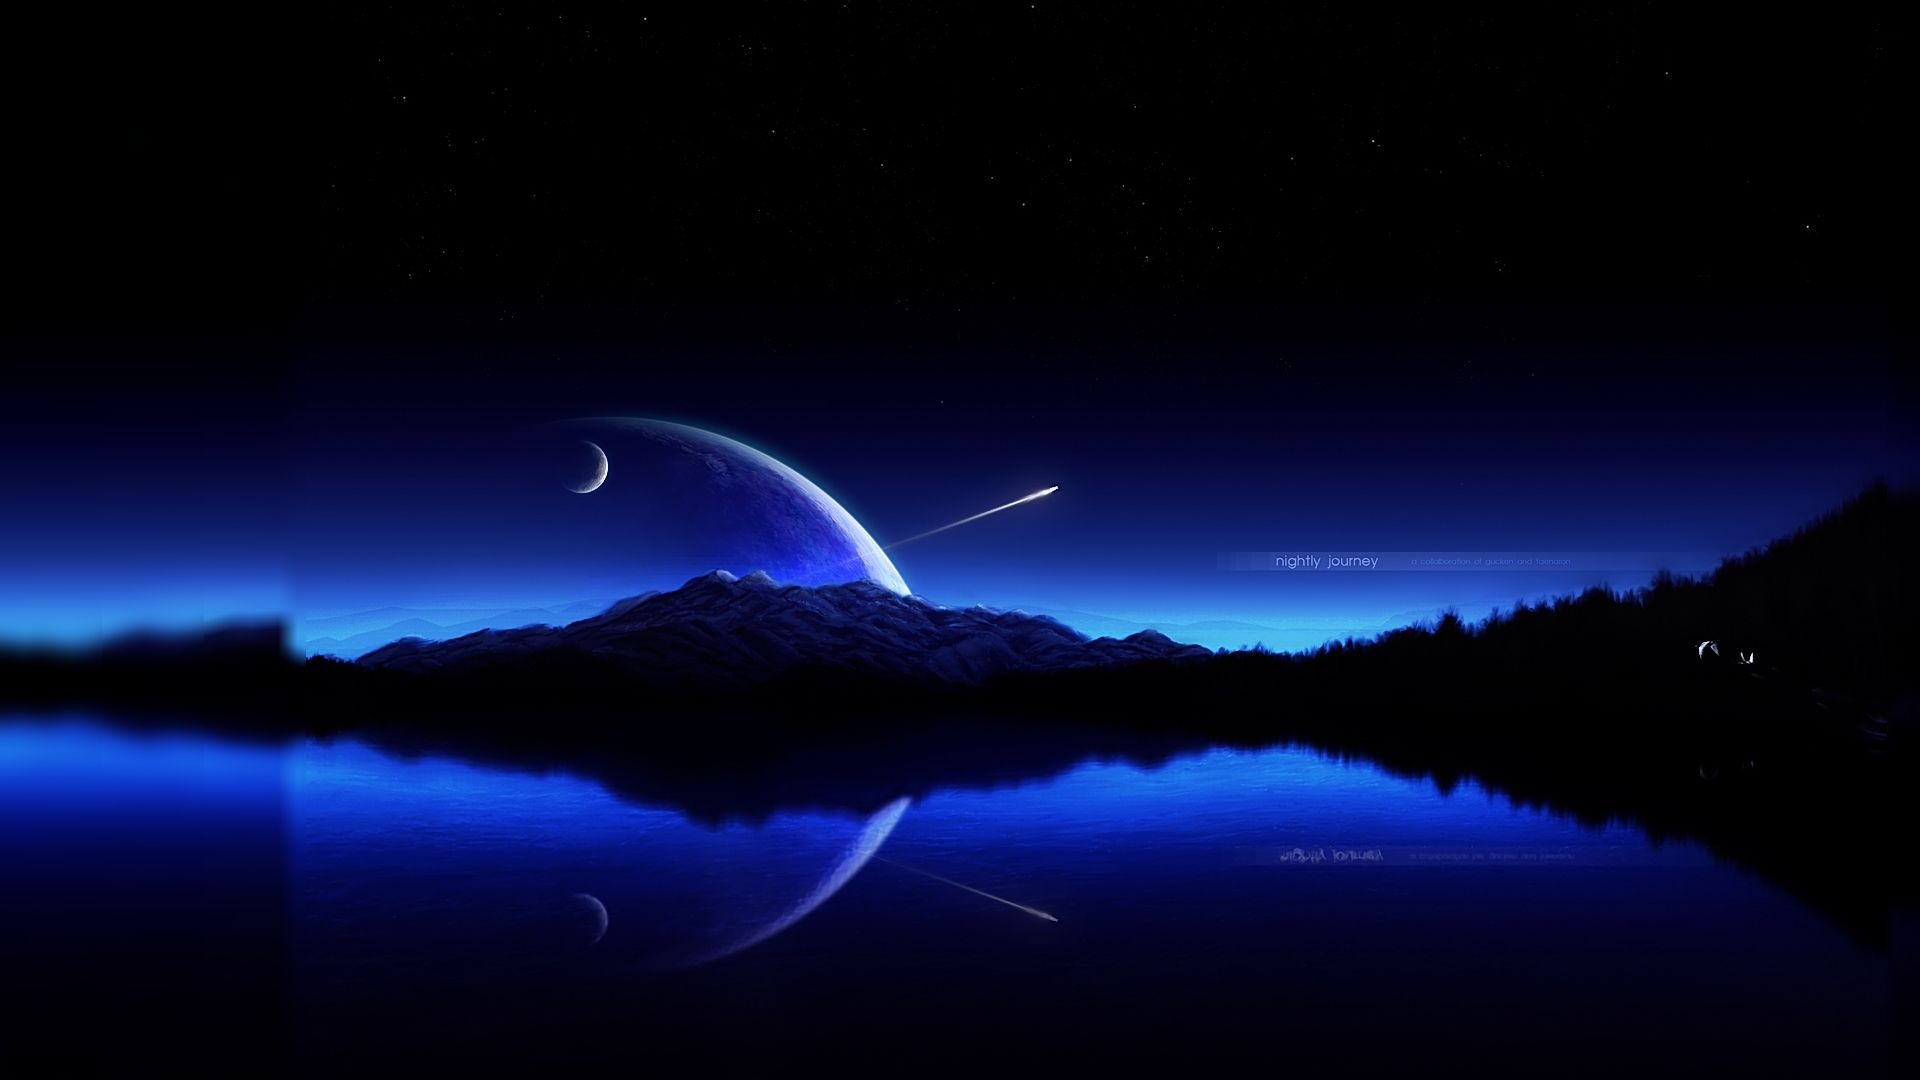 Hd Wallpaper On Pc 19 10 Hd Wallpaper For Pc 53 Wallpapers Adorable Wallpapers Night Sky Wallpaper Beautiful Moon Abstract Wallpaper